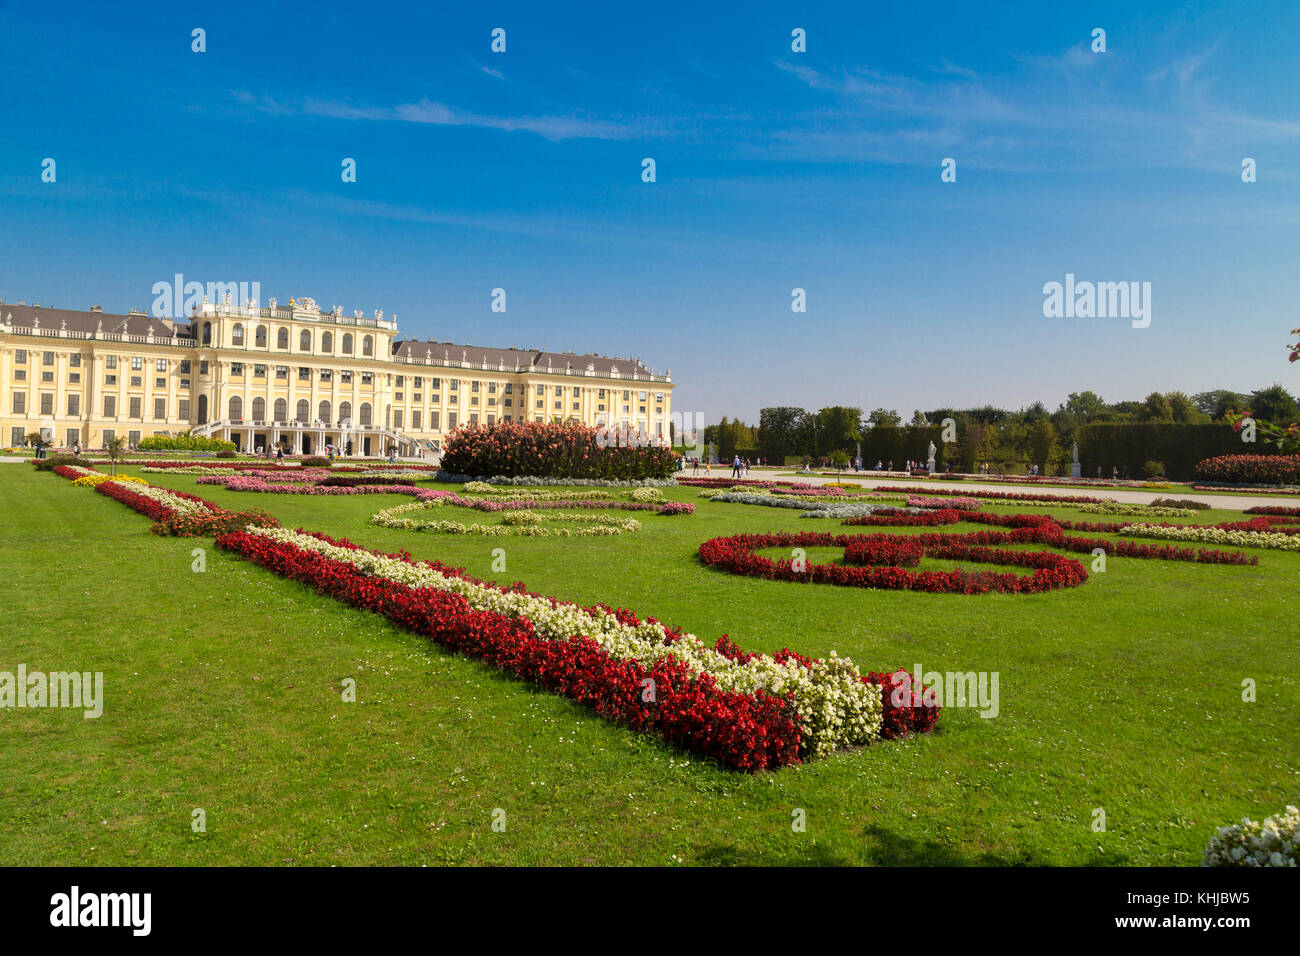 VIENNA, AUSTRIA - SEPTEMBER 11, 2016 : View of Schönbrunn Palace, one of best touristic attractions in Vienna - Stock Image